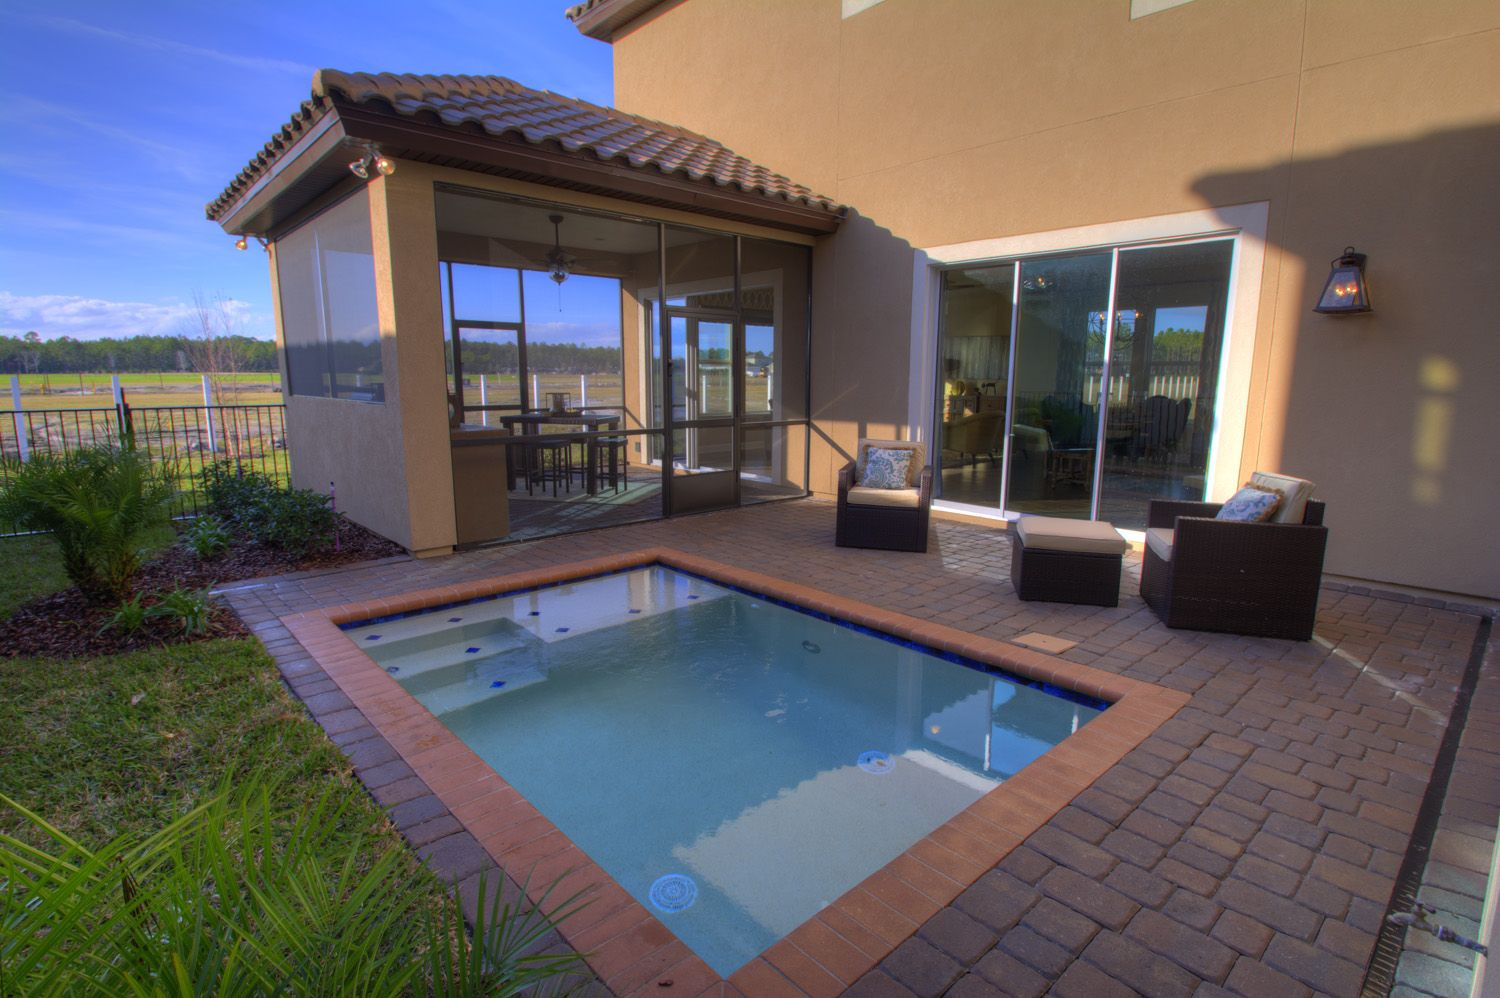 The Seville Model By ICI Homes In Siena At Town Center Offers A Dipping Pool